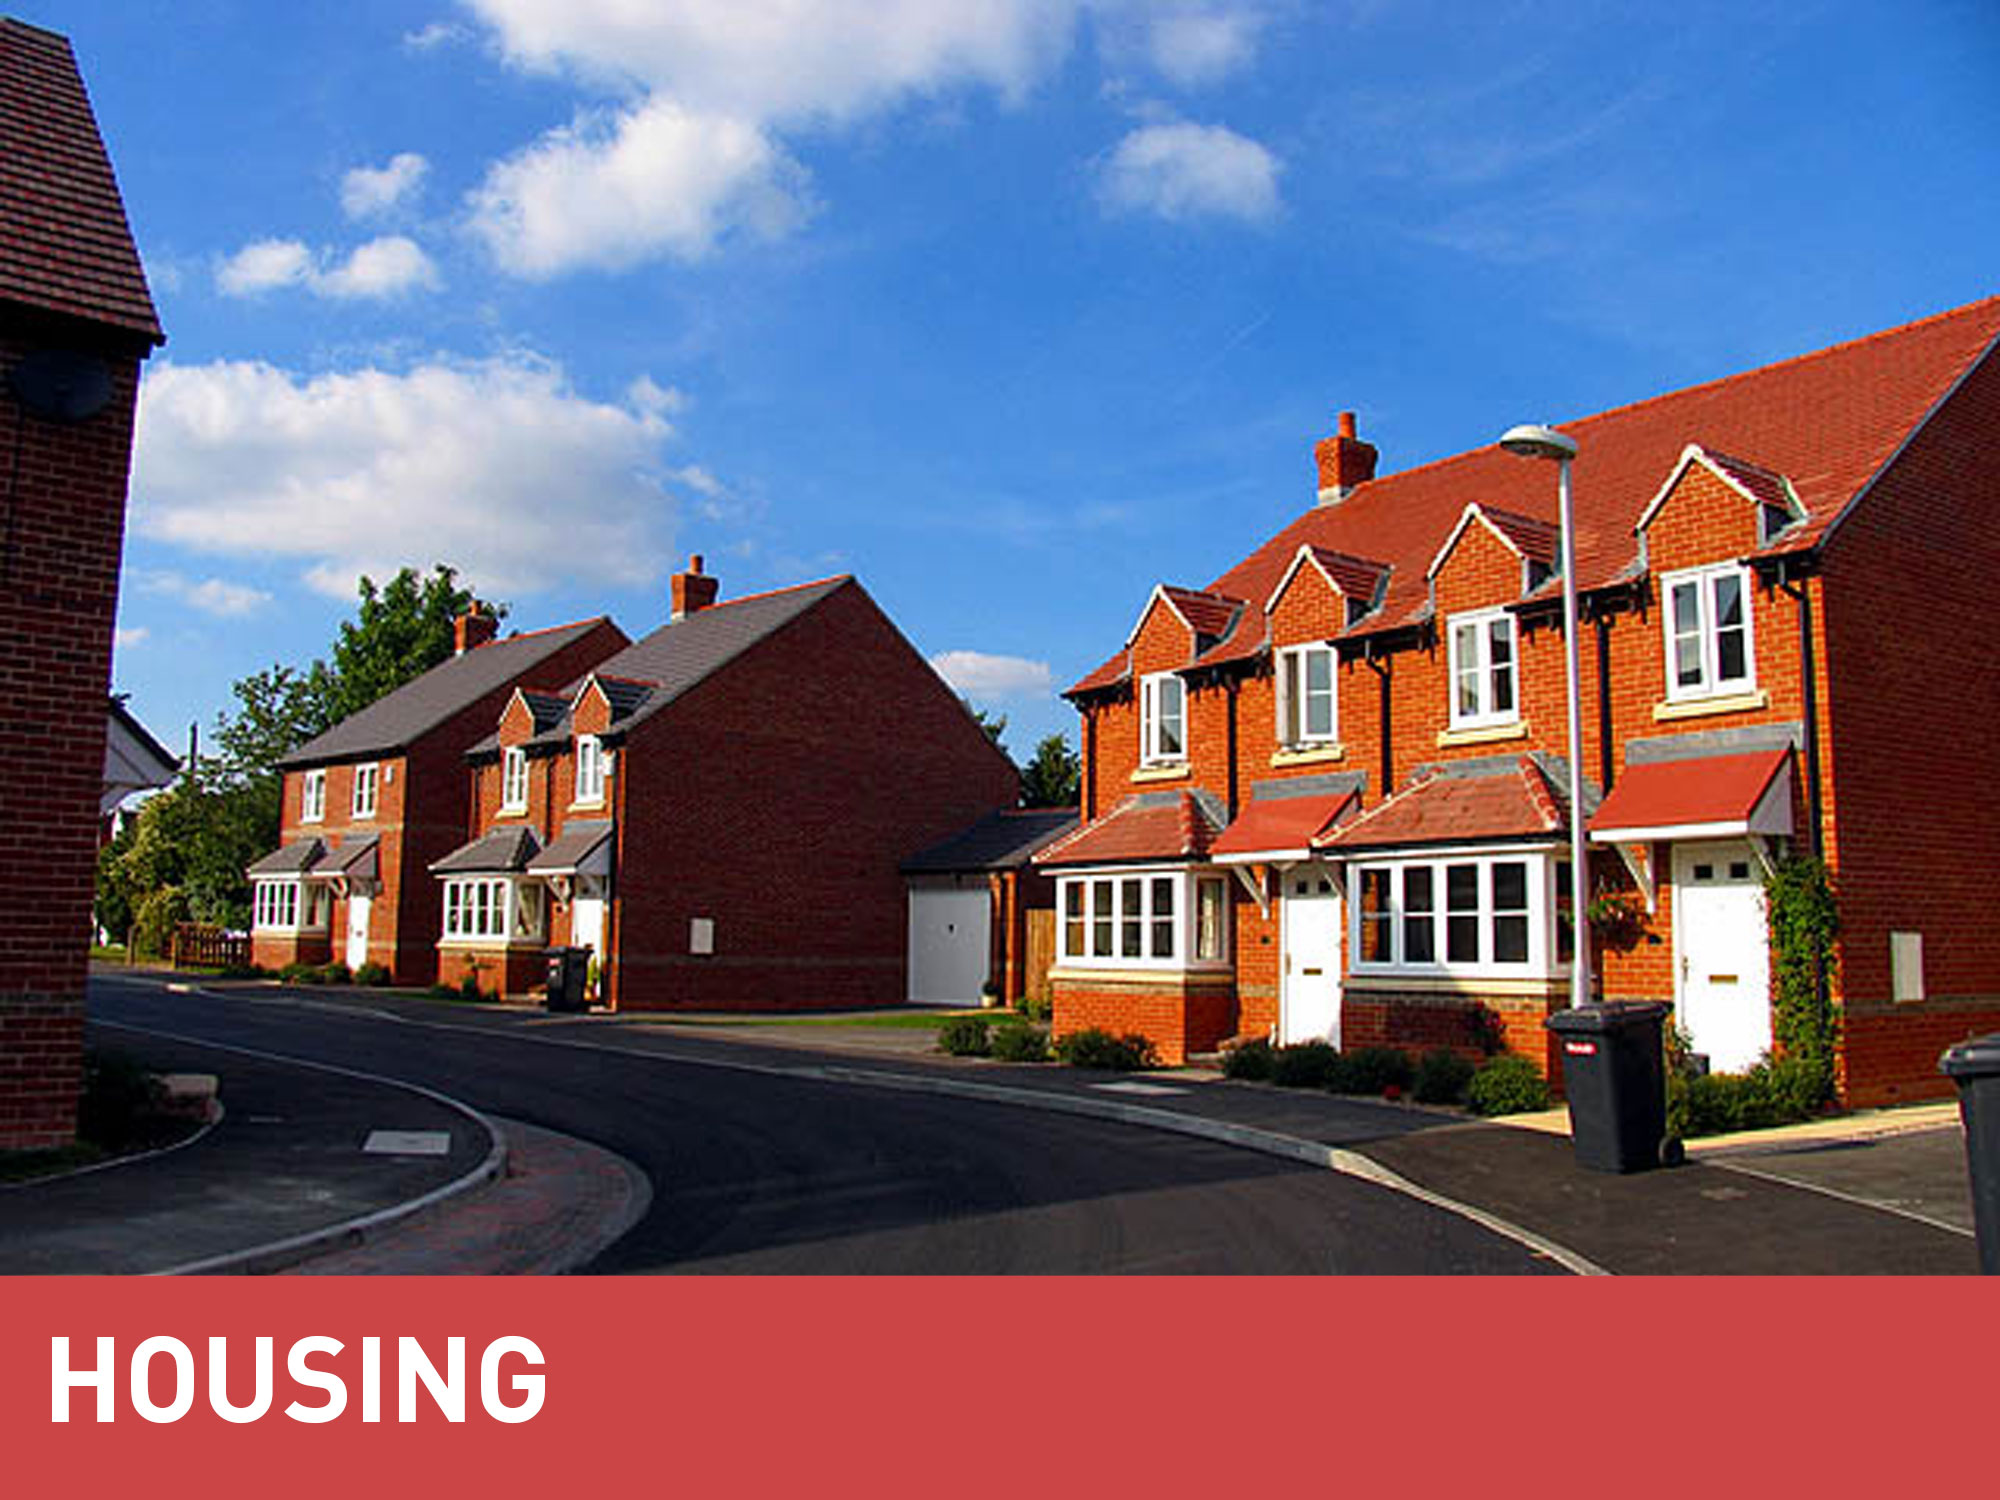 MGF Homes category banner over an image of a street on a housing estate